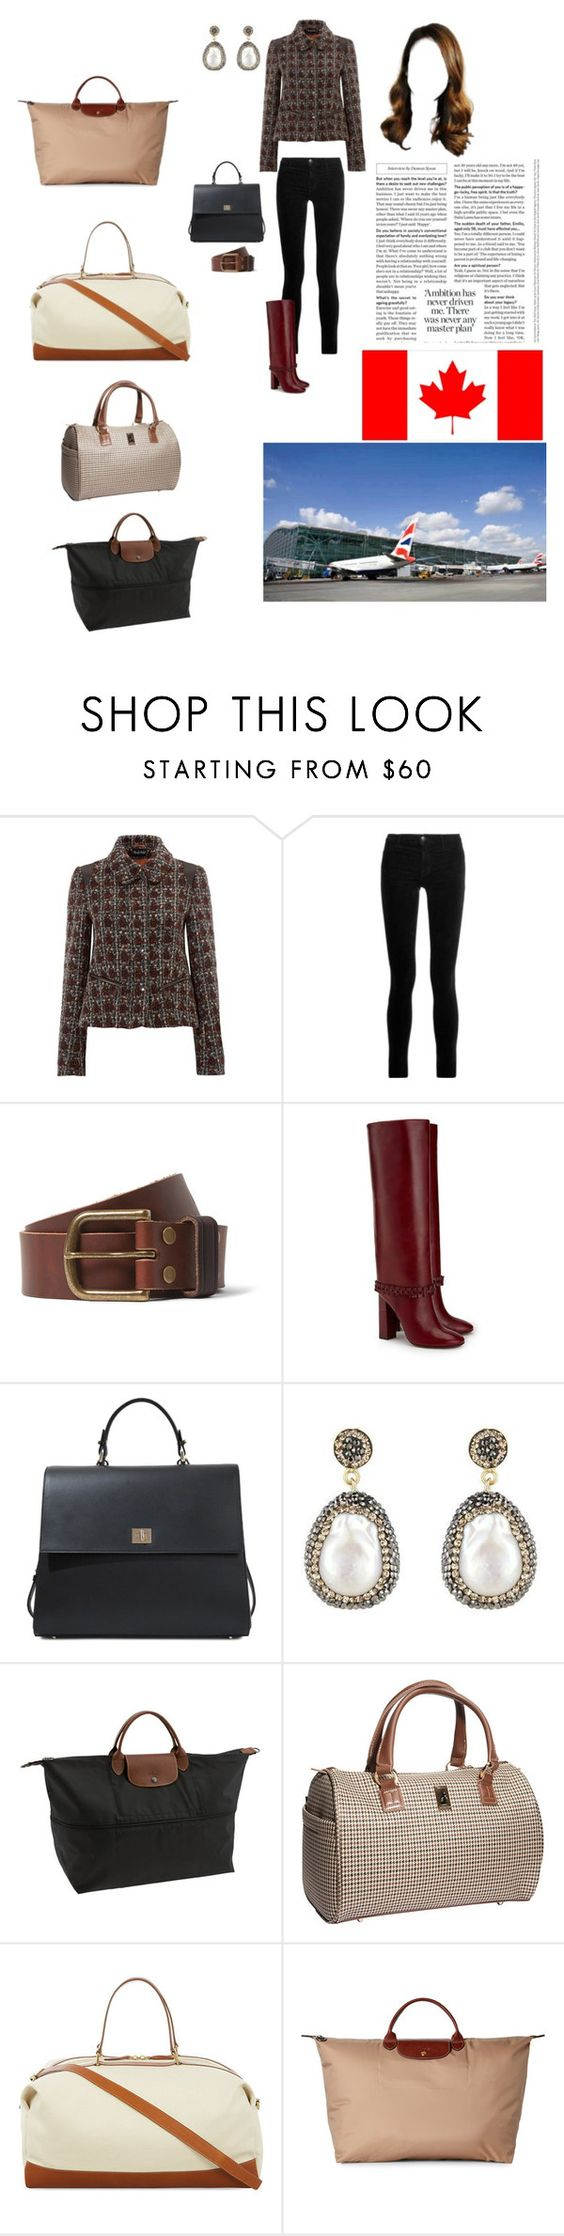 """""""Travelling to Ottawa for attending the Davis Cup First Group via Heathrow"""" by theduchessroyal ❤ liked on Polyvore featuring J Brand, Jean Shop, Tory Burch, HUGO, Soru Jewellery, Longchamp, London Fog and Globe-Trotter"""